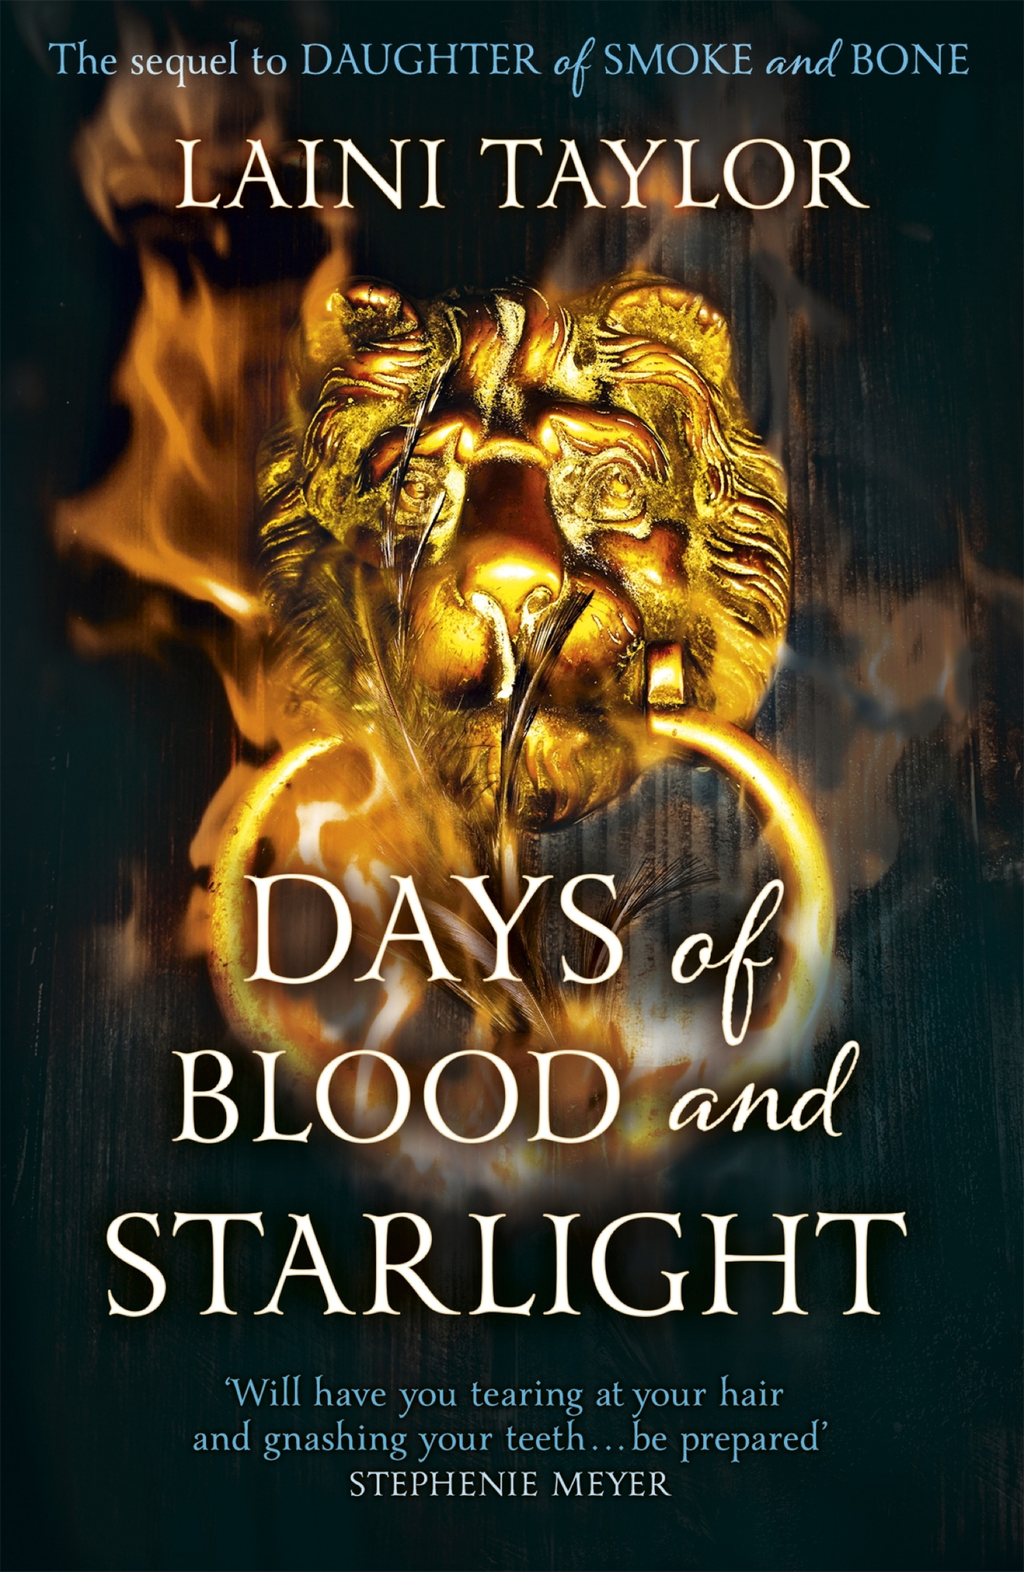 Days of Blood and Starlight Daughter of Smoke and Bone Trilogy: Book Two